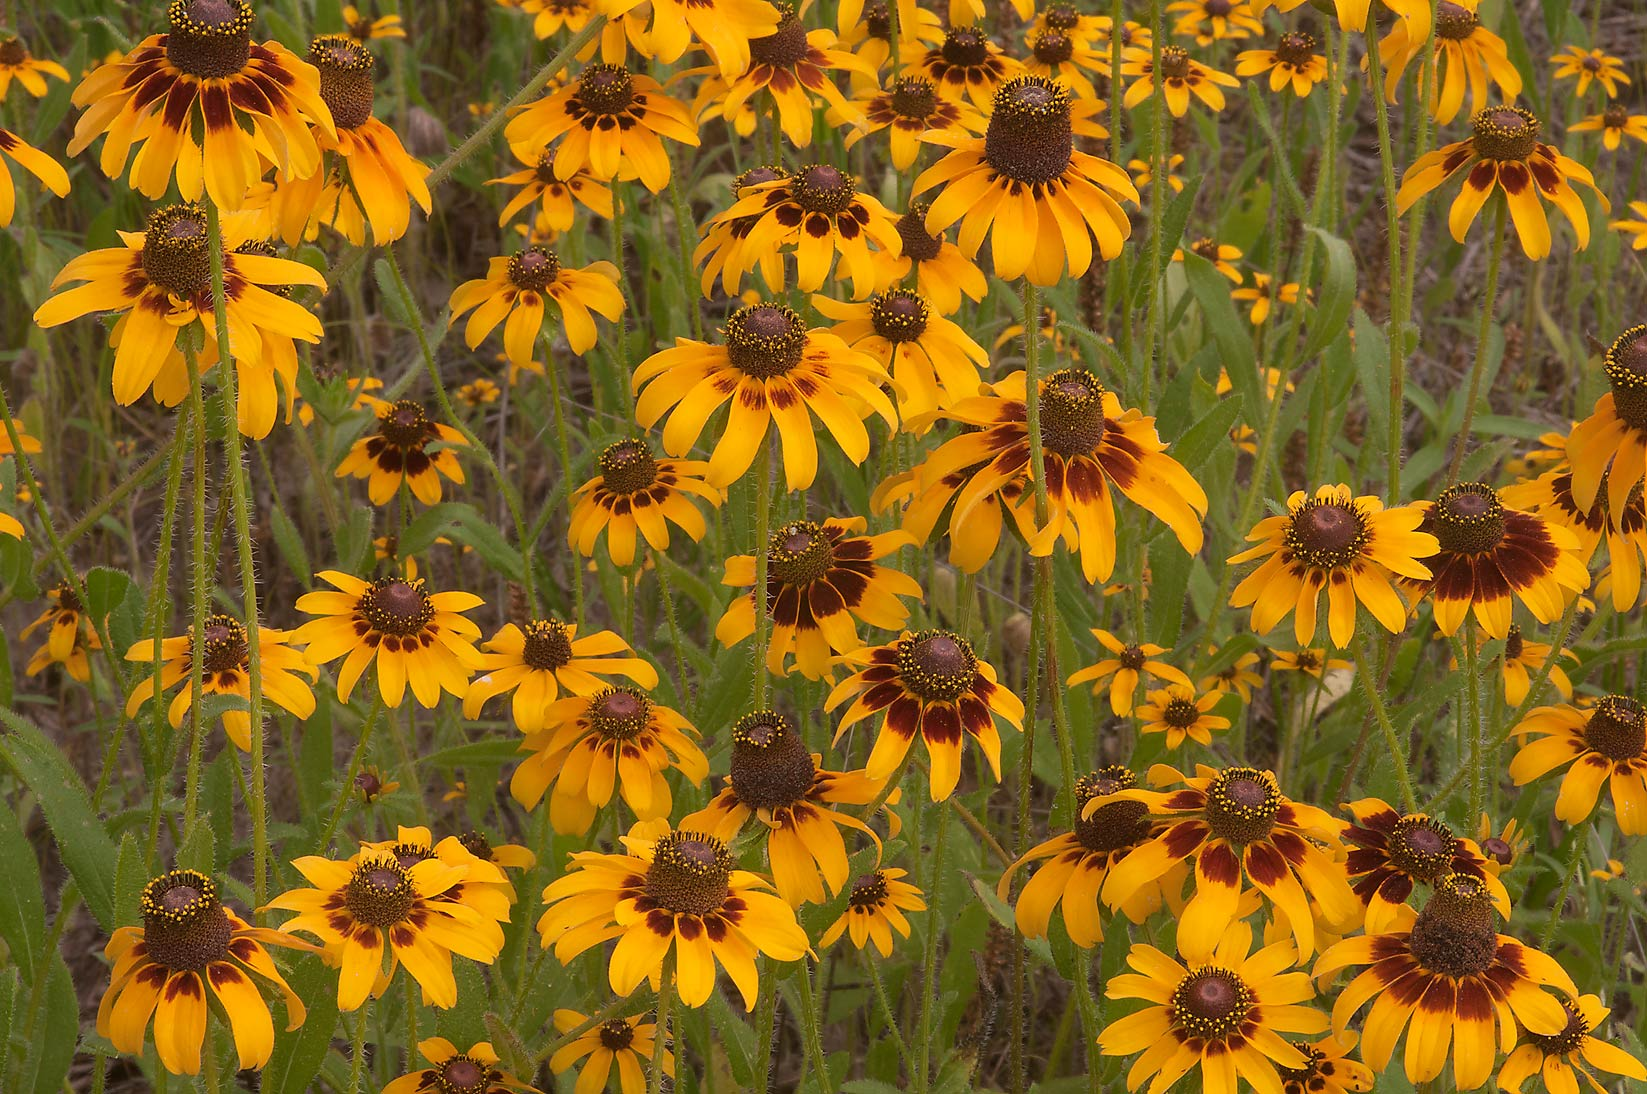 Photo 1052 03 yellow flowers of black eyed susan at equestrian x large image mightylinksfo